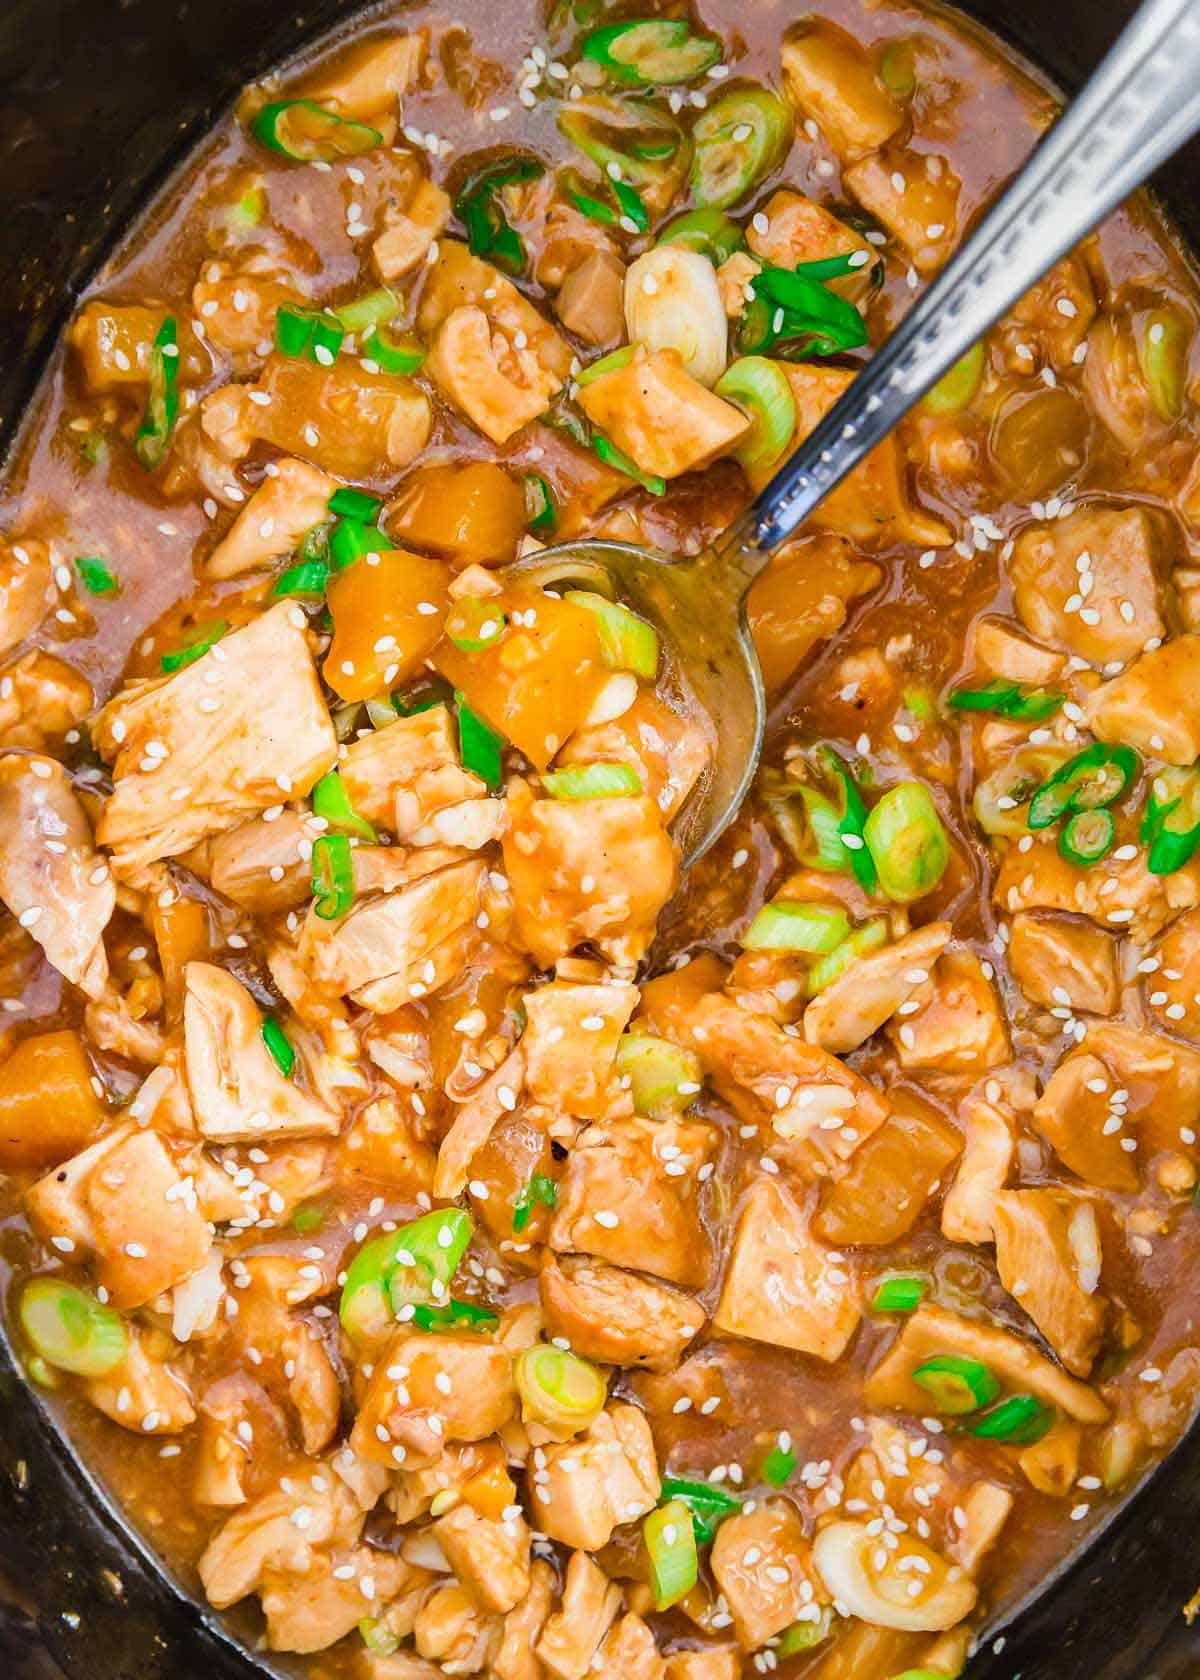 Honey garlic chicken thighs cooked in the slow cooker are a delicious takeout fakeout dinner recipe.